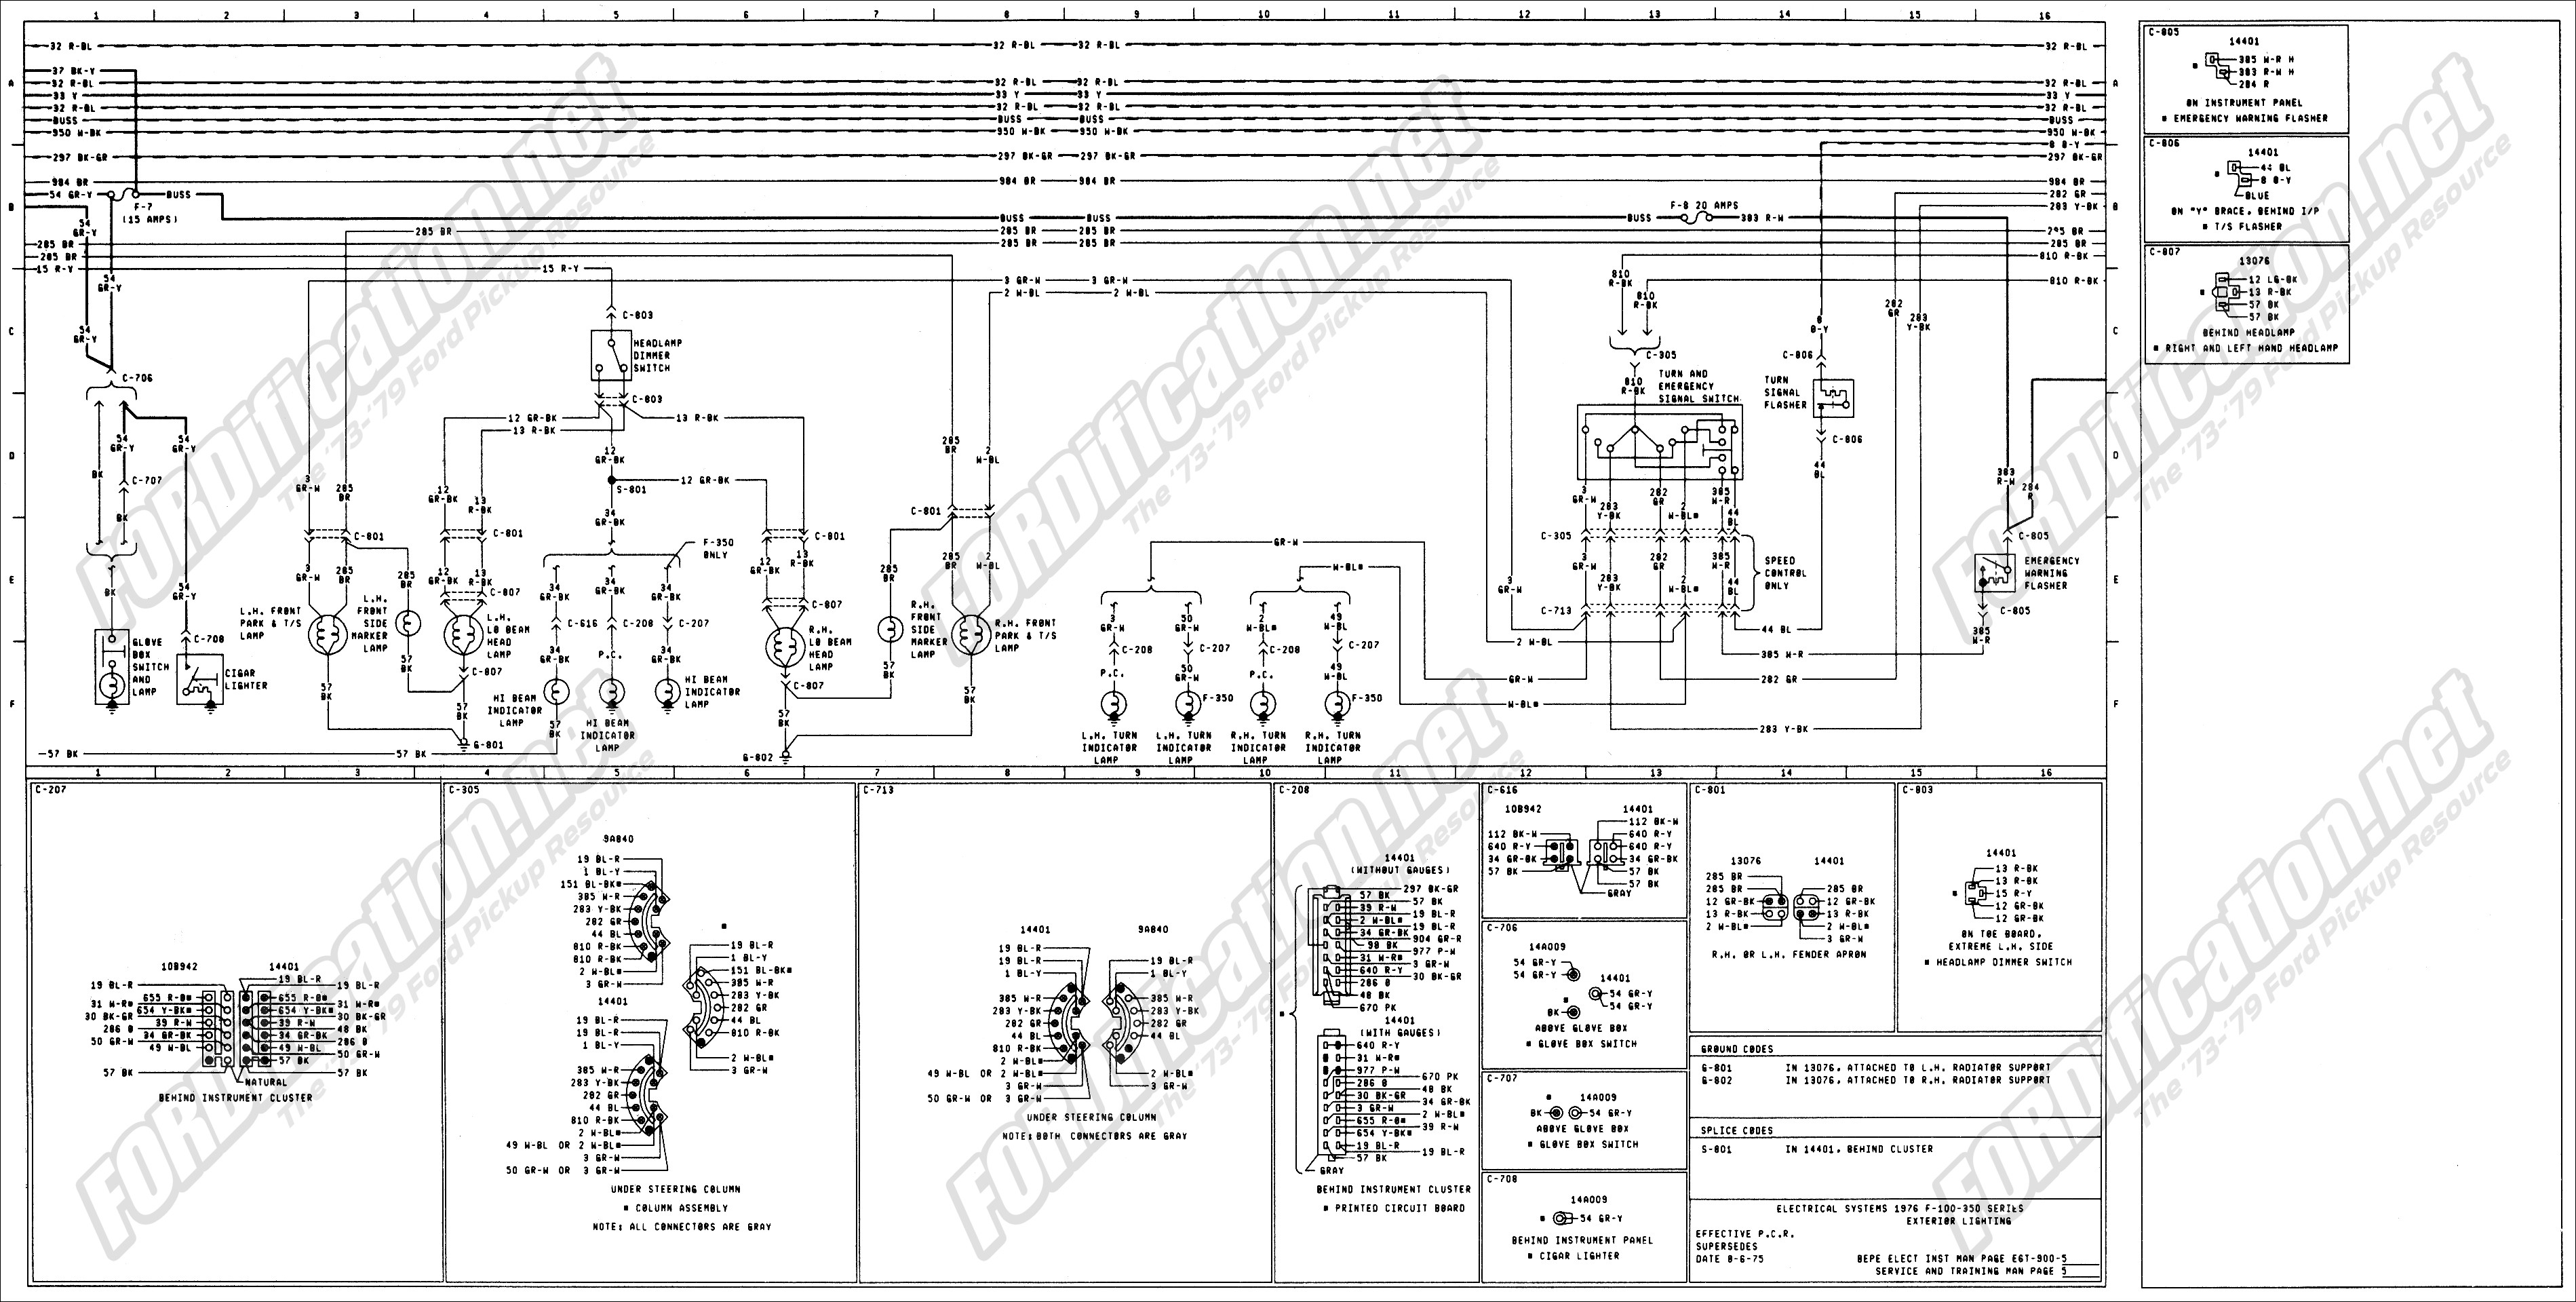 1978 ford truck wiring schematic | free wiring diagram 1977 ford f100 wiring harness 1977 ford f100 wiring diagram of heater